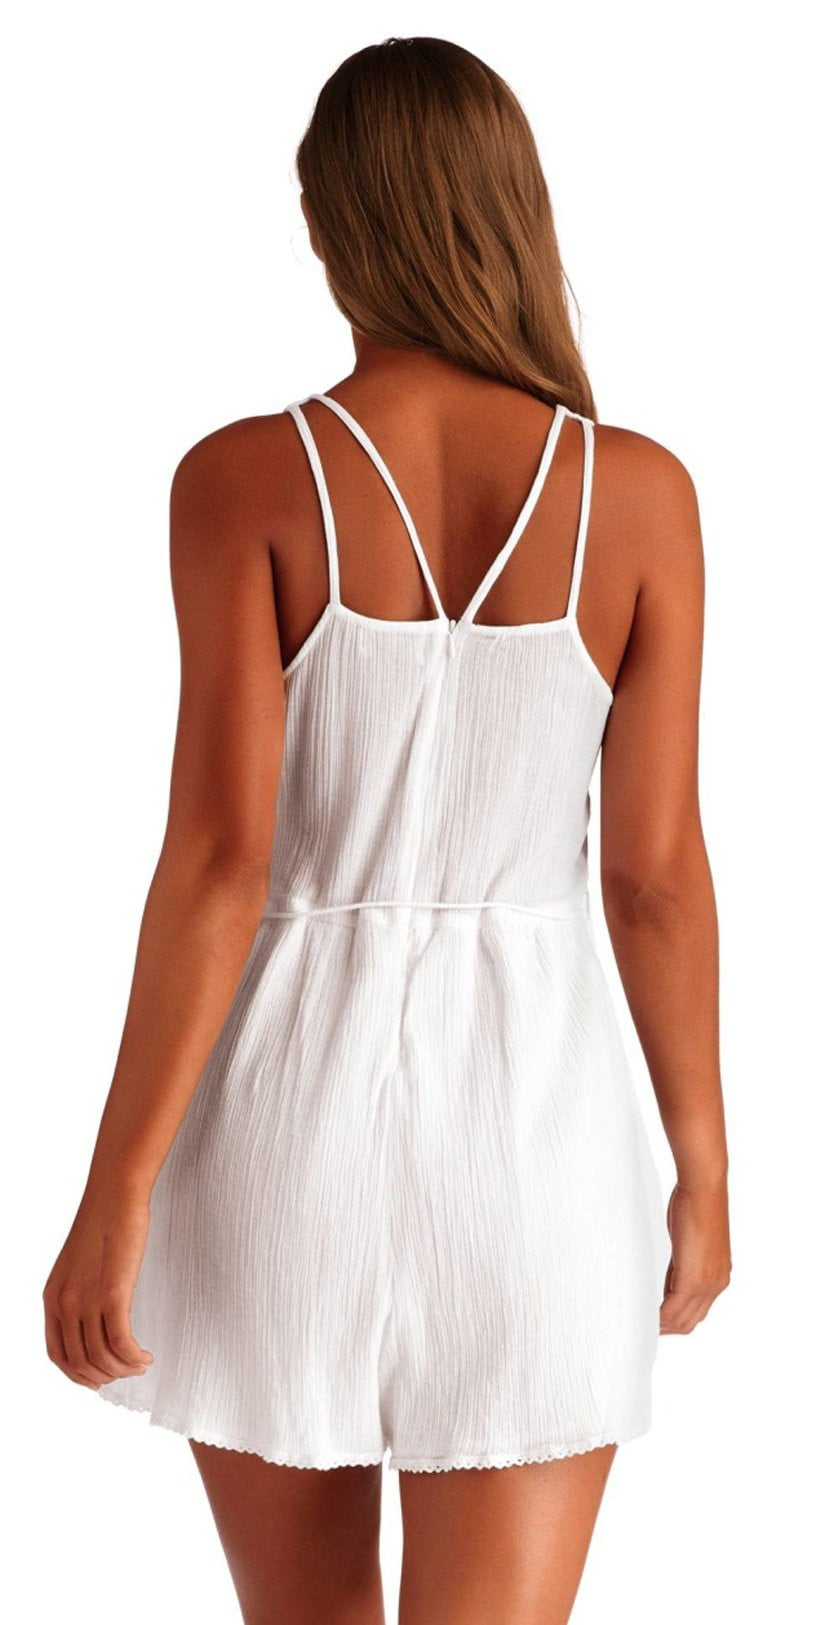 7c668e3333c Vitamin A Racquel Romper in White 7RP LBG – South Beach Swimsuits